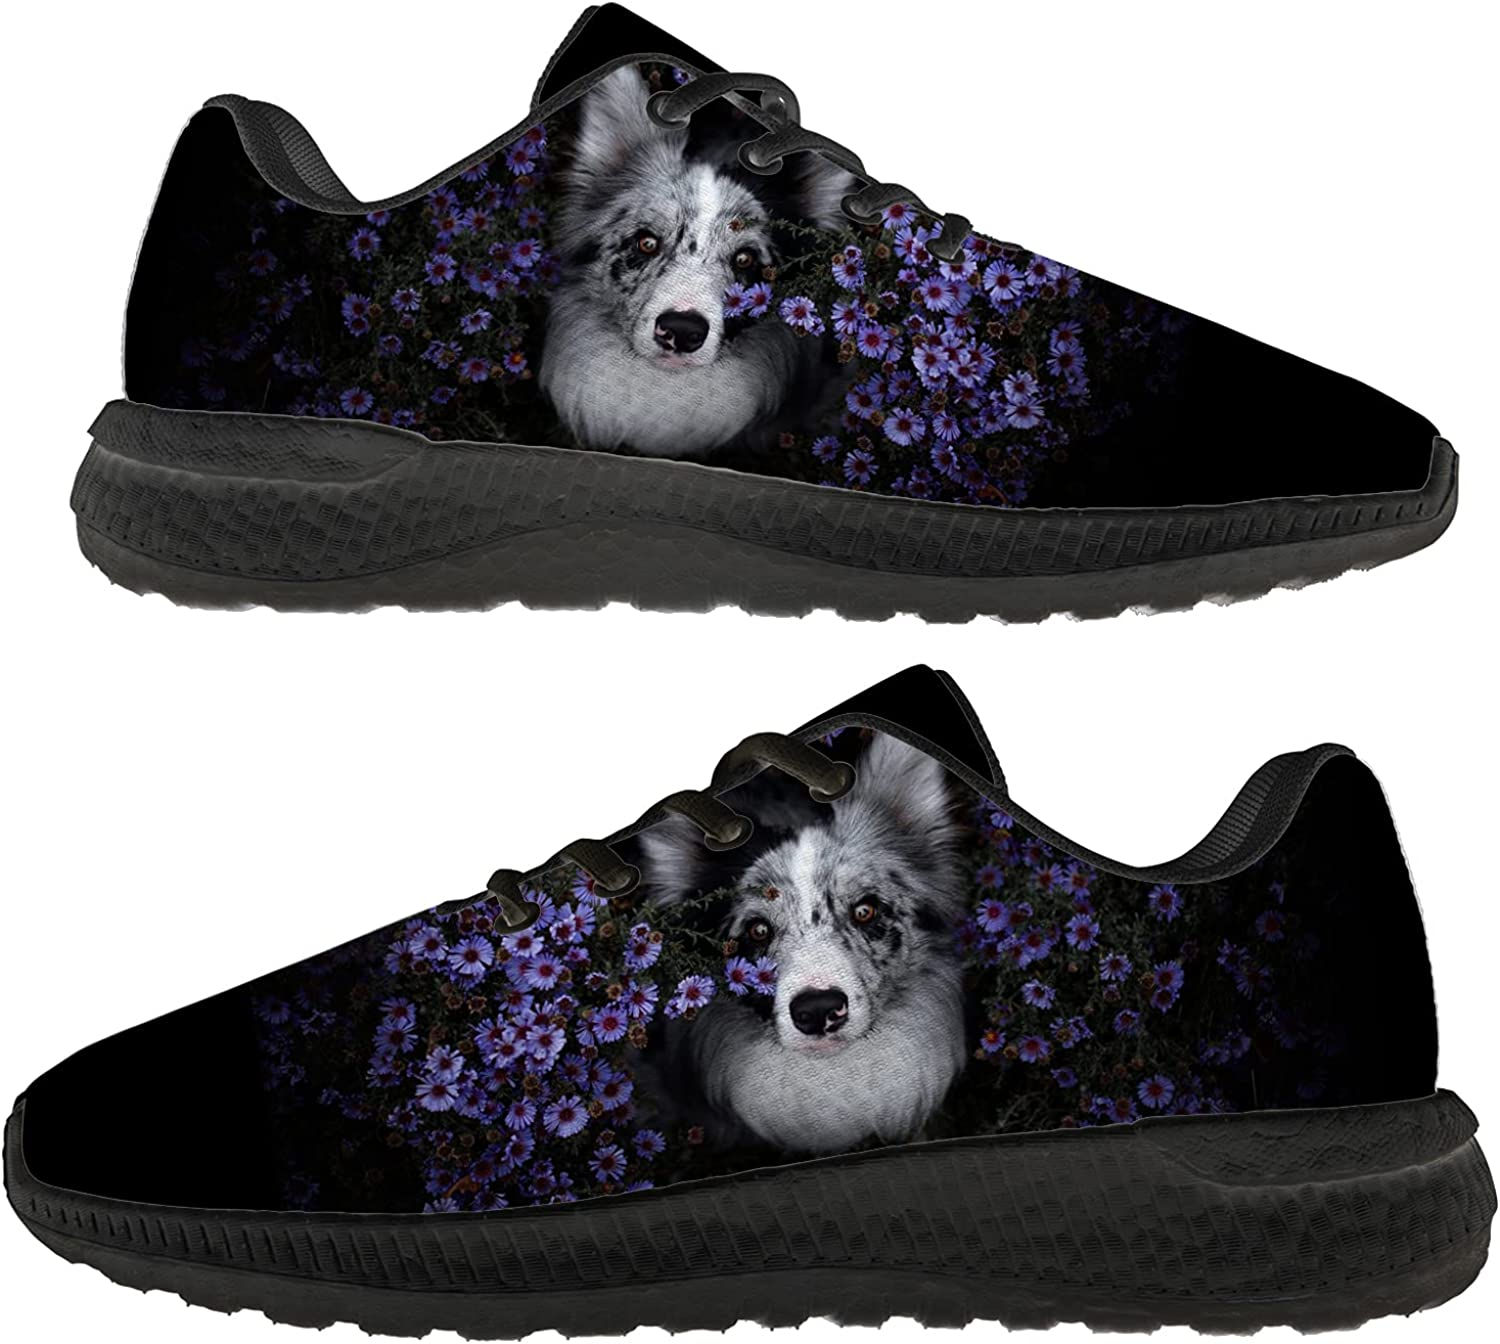 Border Collie Shoes for Women Men 3D Print Breathable Casual Ultra Comfort Athletic Sneaker Gifts for Holiday